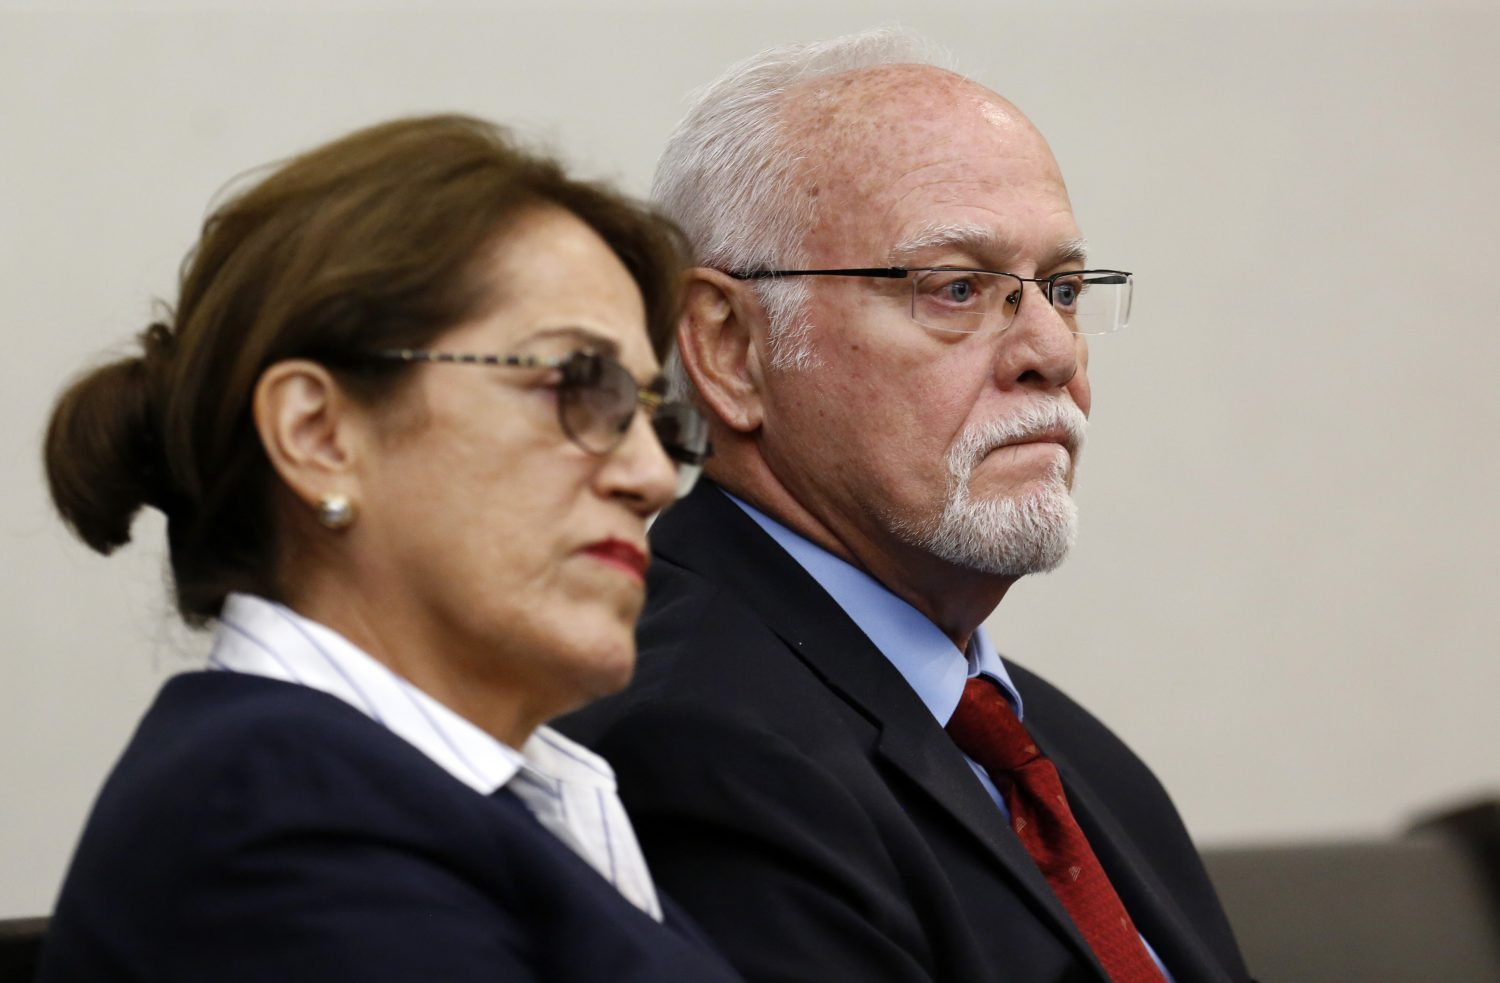 The parents of defendant Pedro Bravo listen to the prosecution give opening statements during their son's murder trial in courtroom 1B of the Alachua County Criminal Justice Center Tuesday, August 5, 2014.  Pedro is accused of killing friend and University of Florida student Christian Aguilar.  (Doug Finger/The Gainesville Sun/Pool)